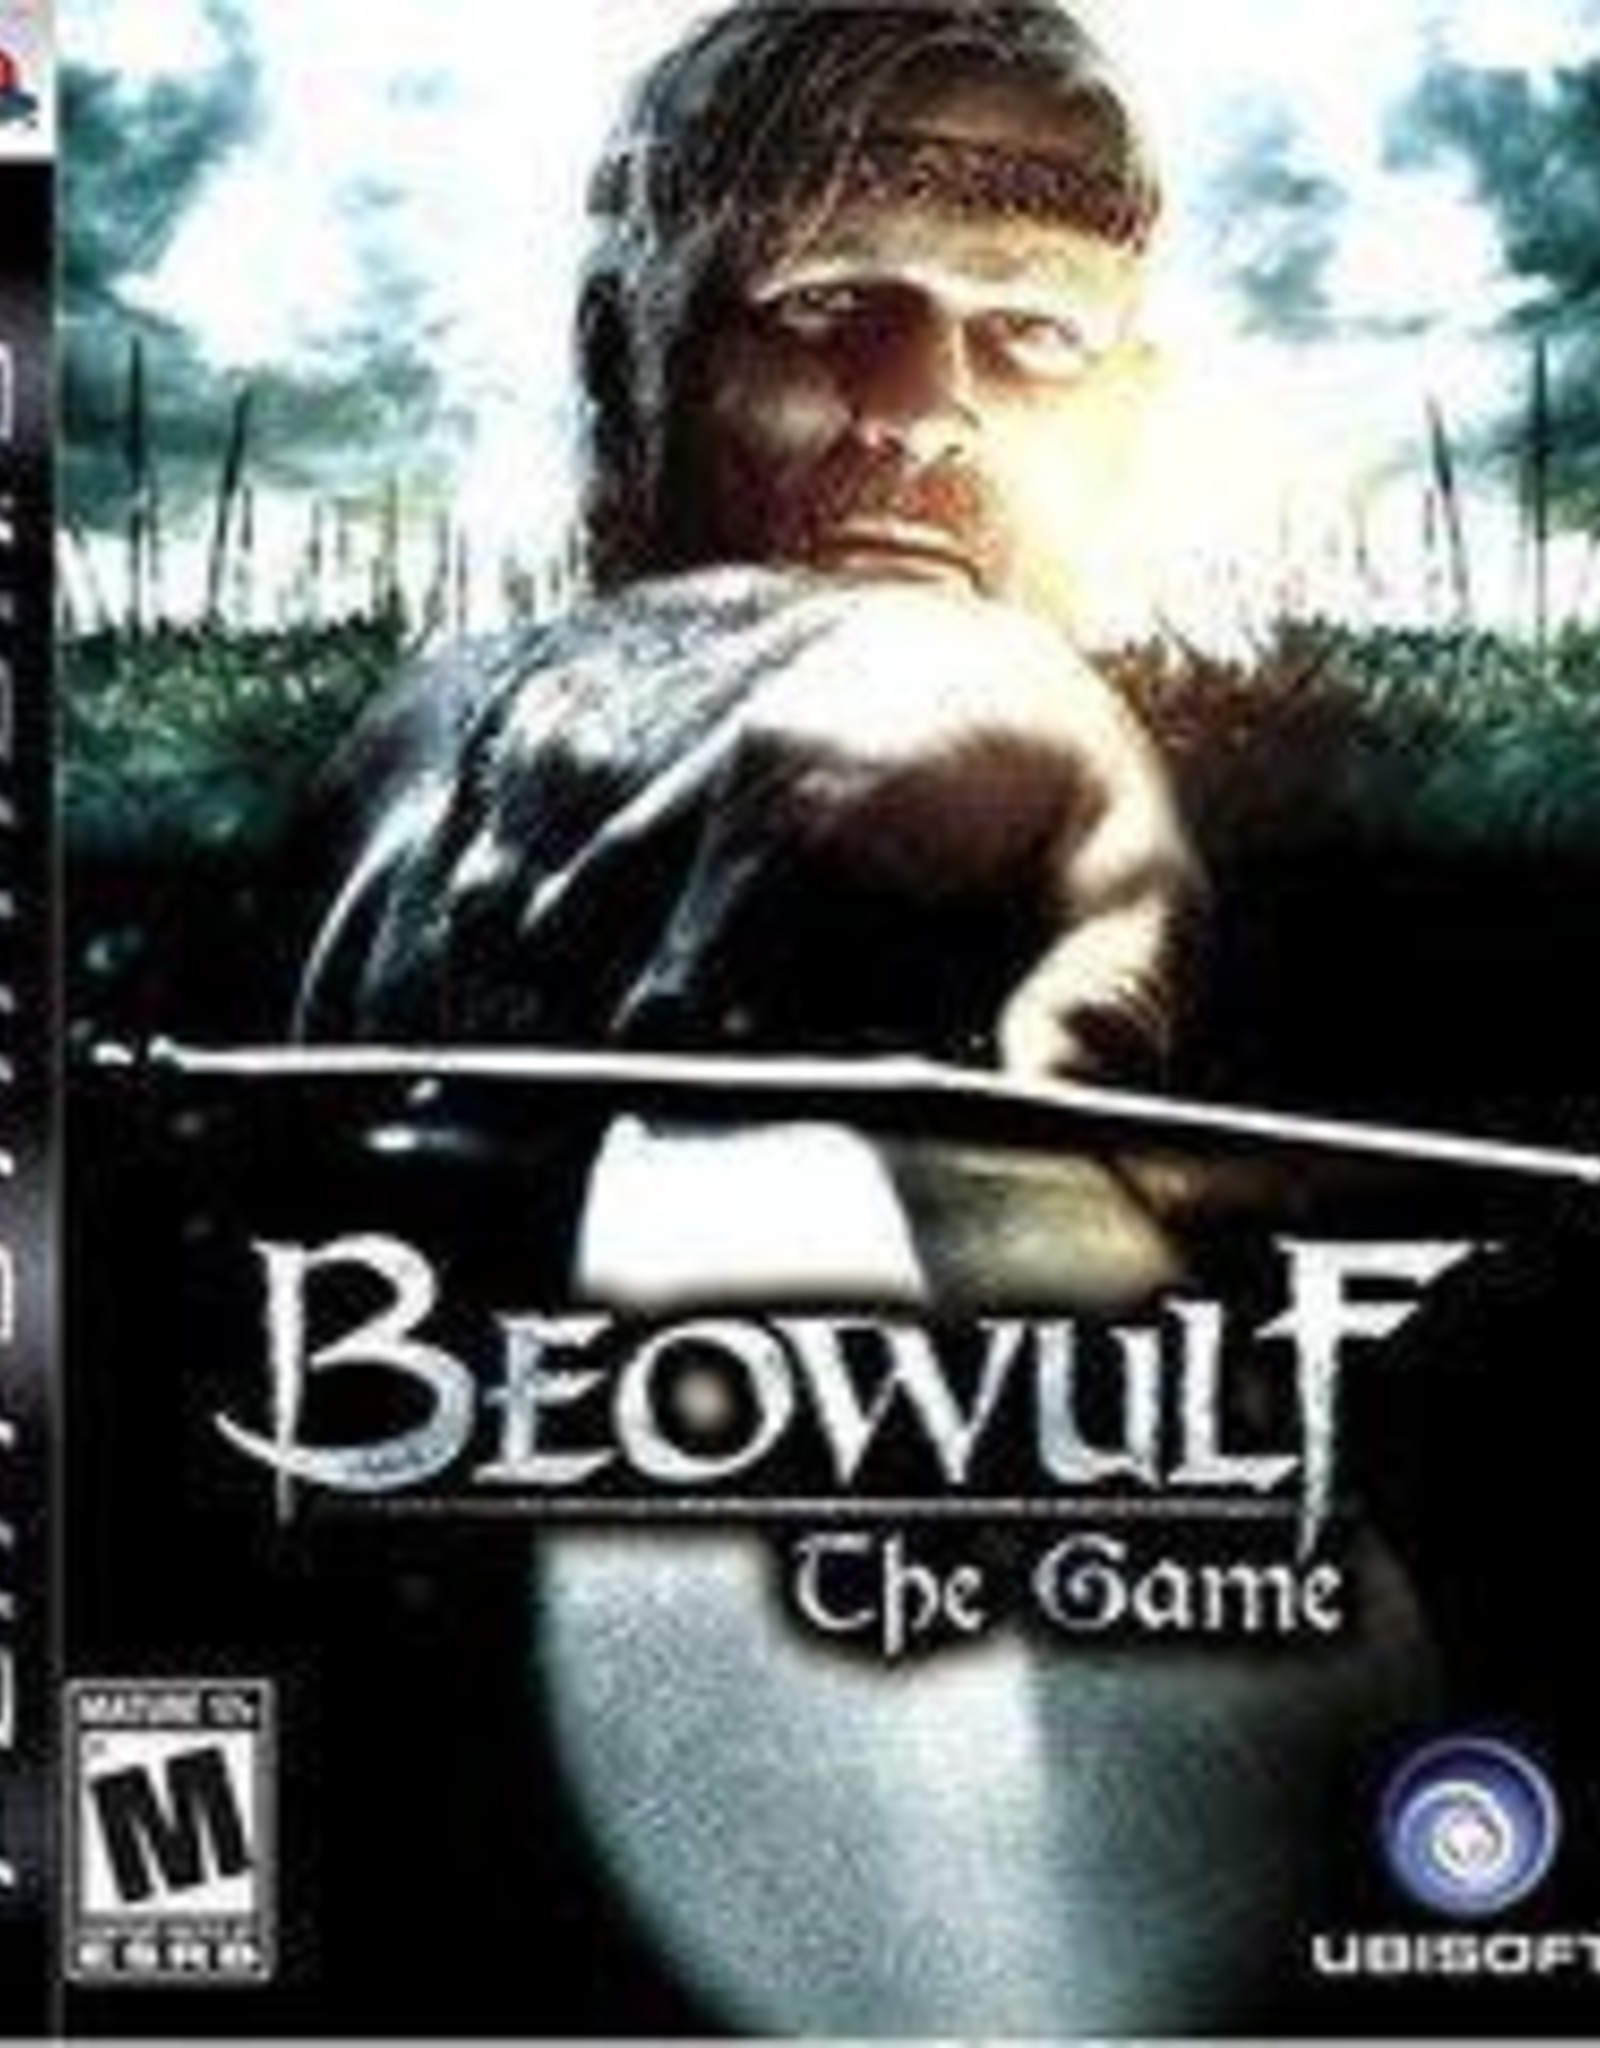 Playstation 3 Beowulf The Game